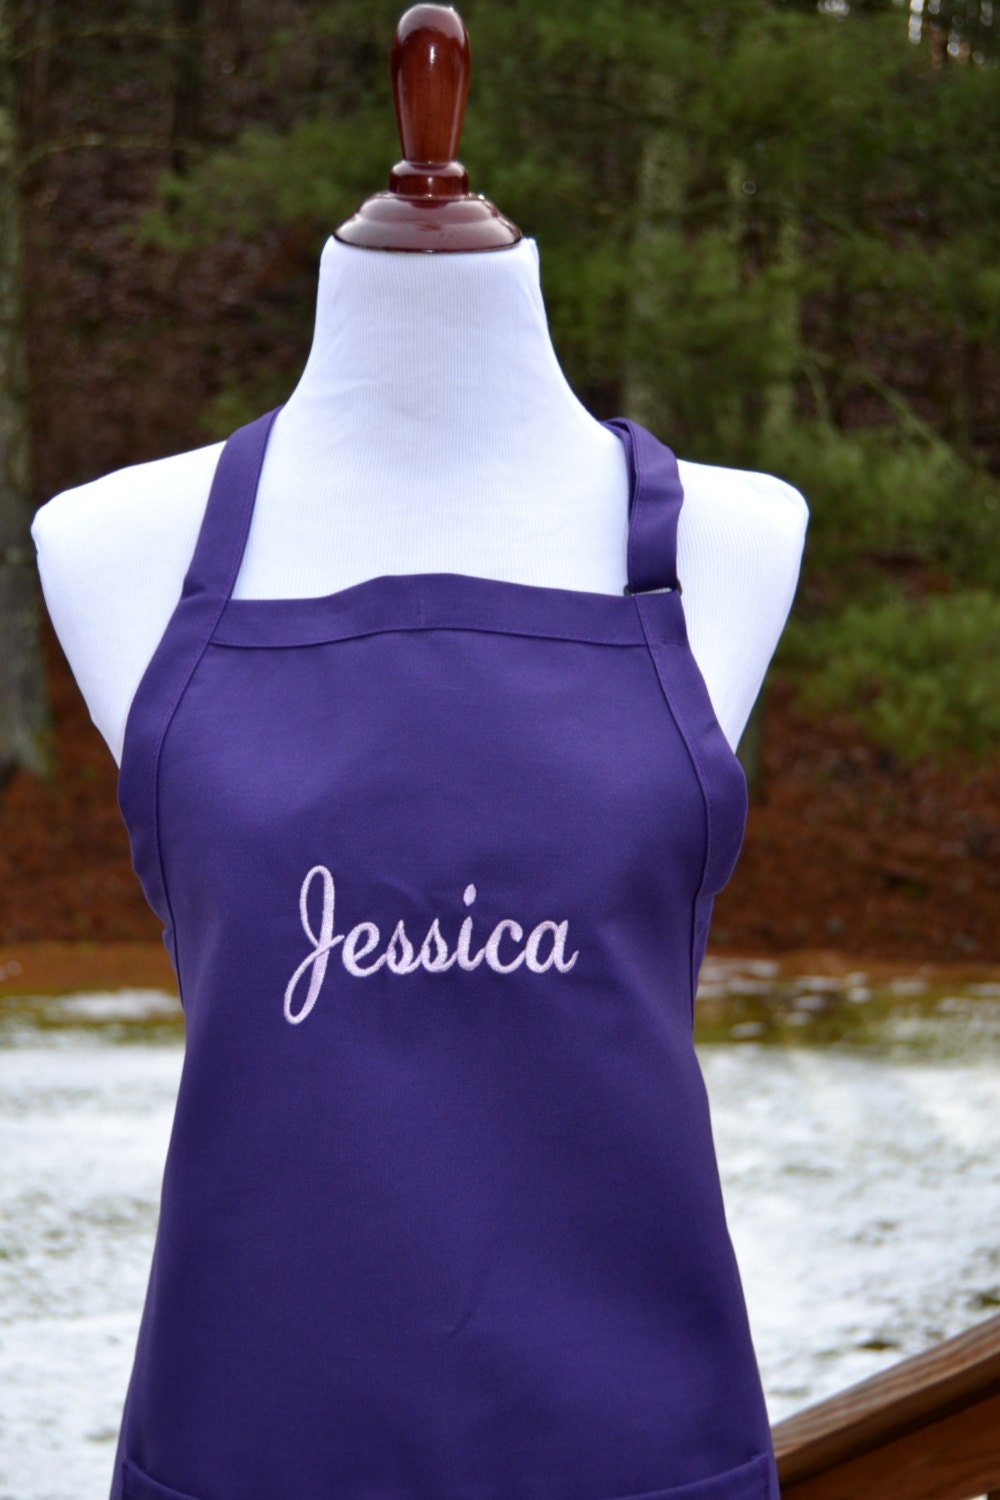 personalized aprons women custom embroidery monogram purple